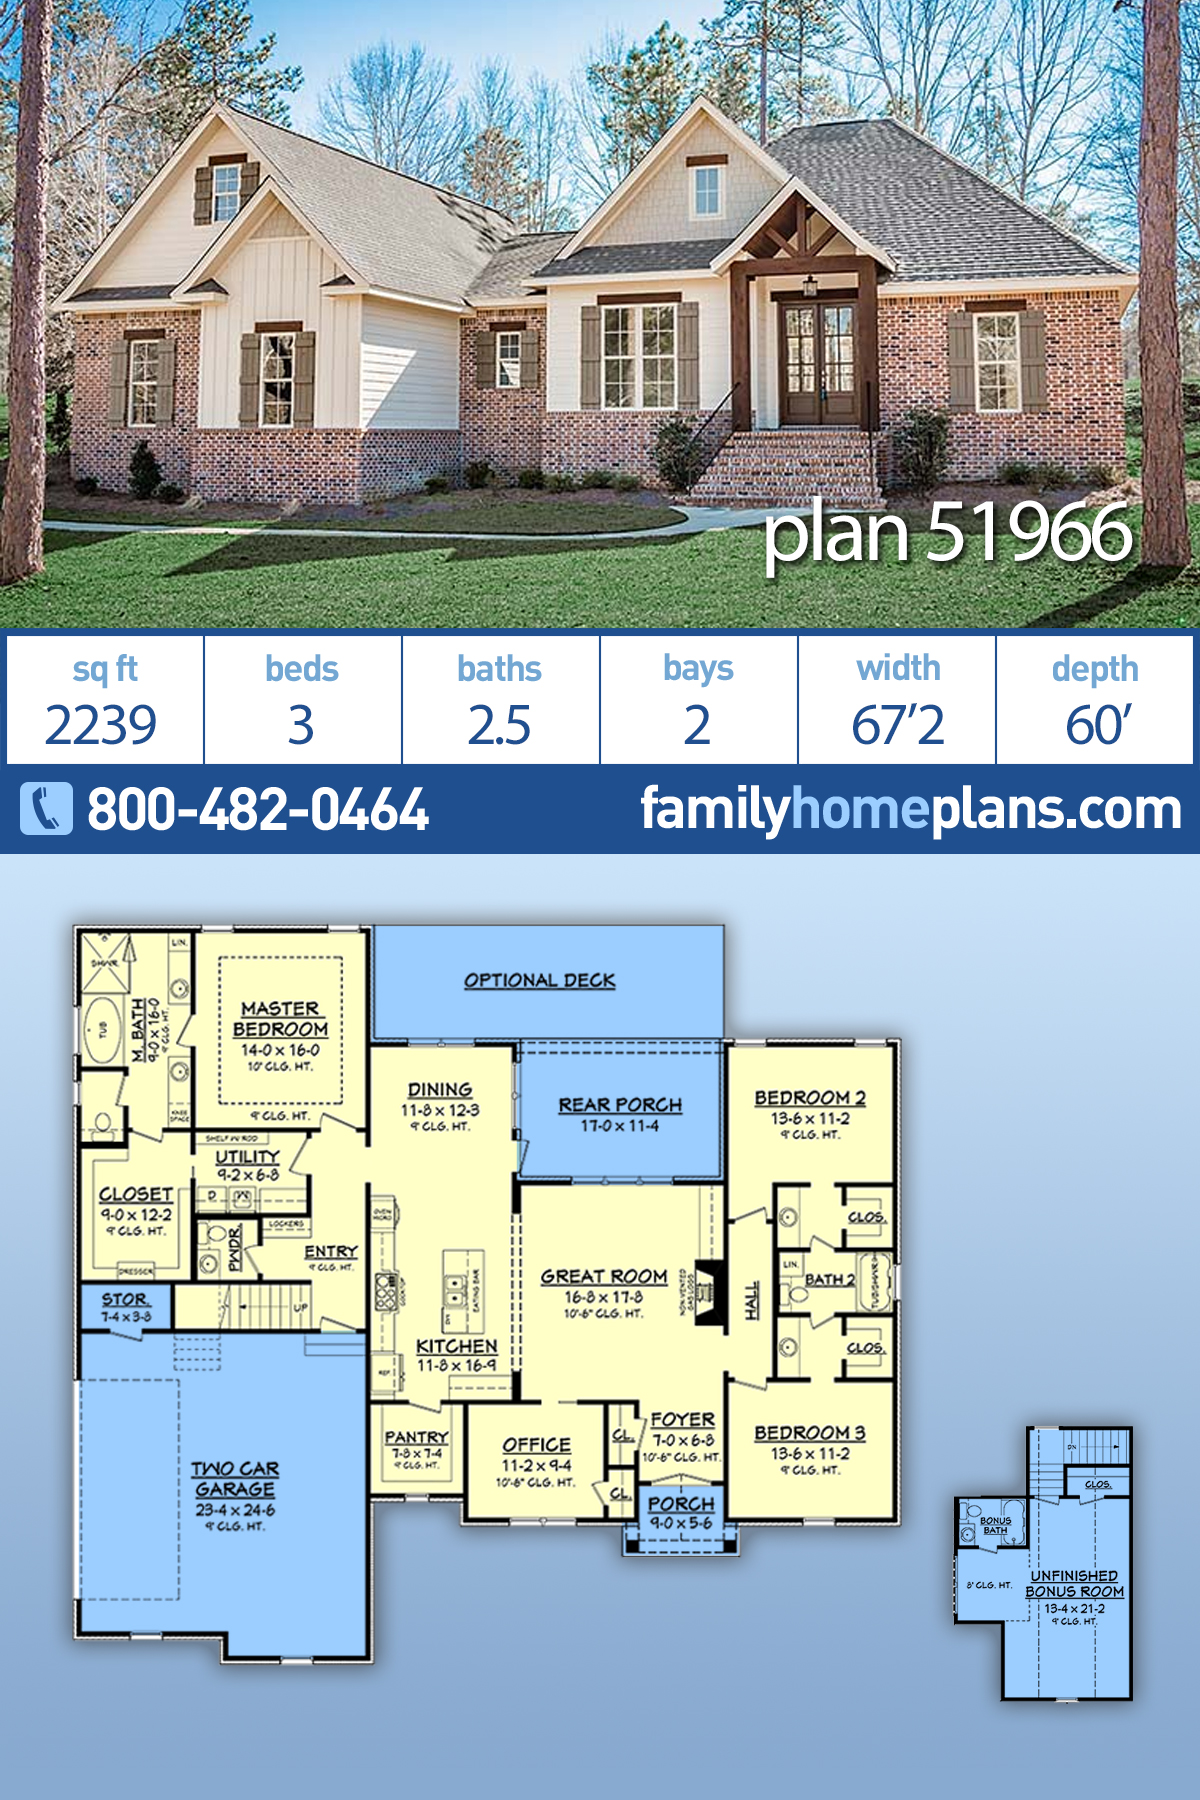 Country, French Country, Traditional House Plan 51966 with 3 Beds , 3 Baths , 2 Car Garage